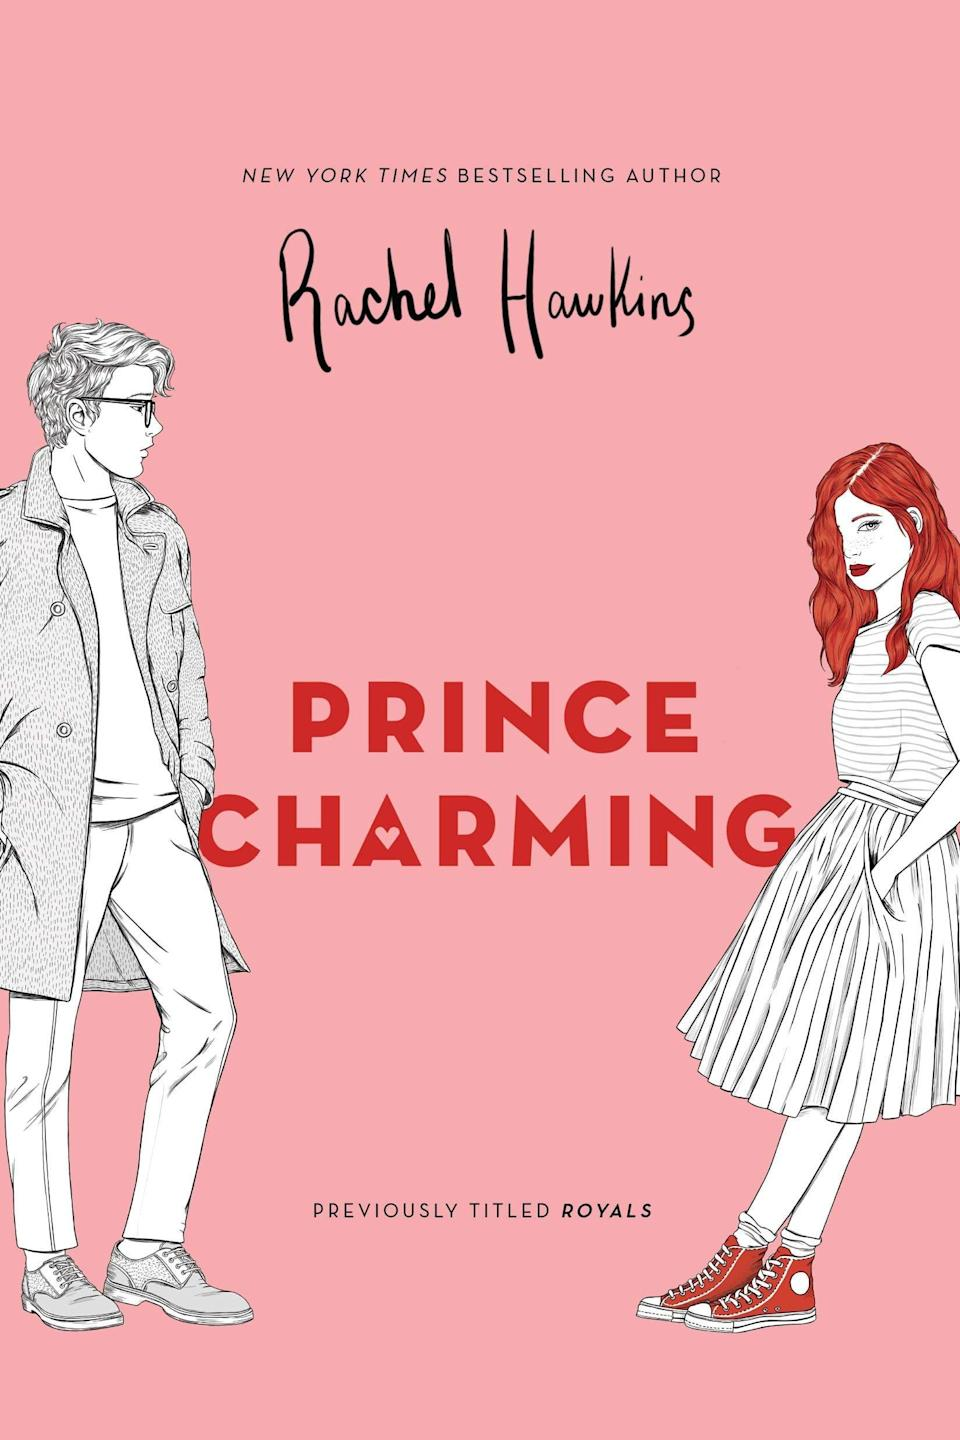 <p>Rachel Hawkins puts a new spin on royal romance with <span><strong>Prince Charming</strong></span>, the first book in her YA <strong>Royals</strong> series. Sixteen-year-old Daisy gets dragged along when her older sister becomes engaged to the Crown Prince of Scotland, but the prince's mischievous younger brother seems hell-bent on stirring up chaos - and taking Daisy along for the ride.</p>